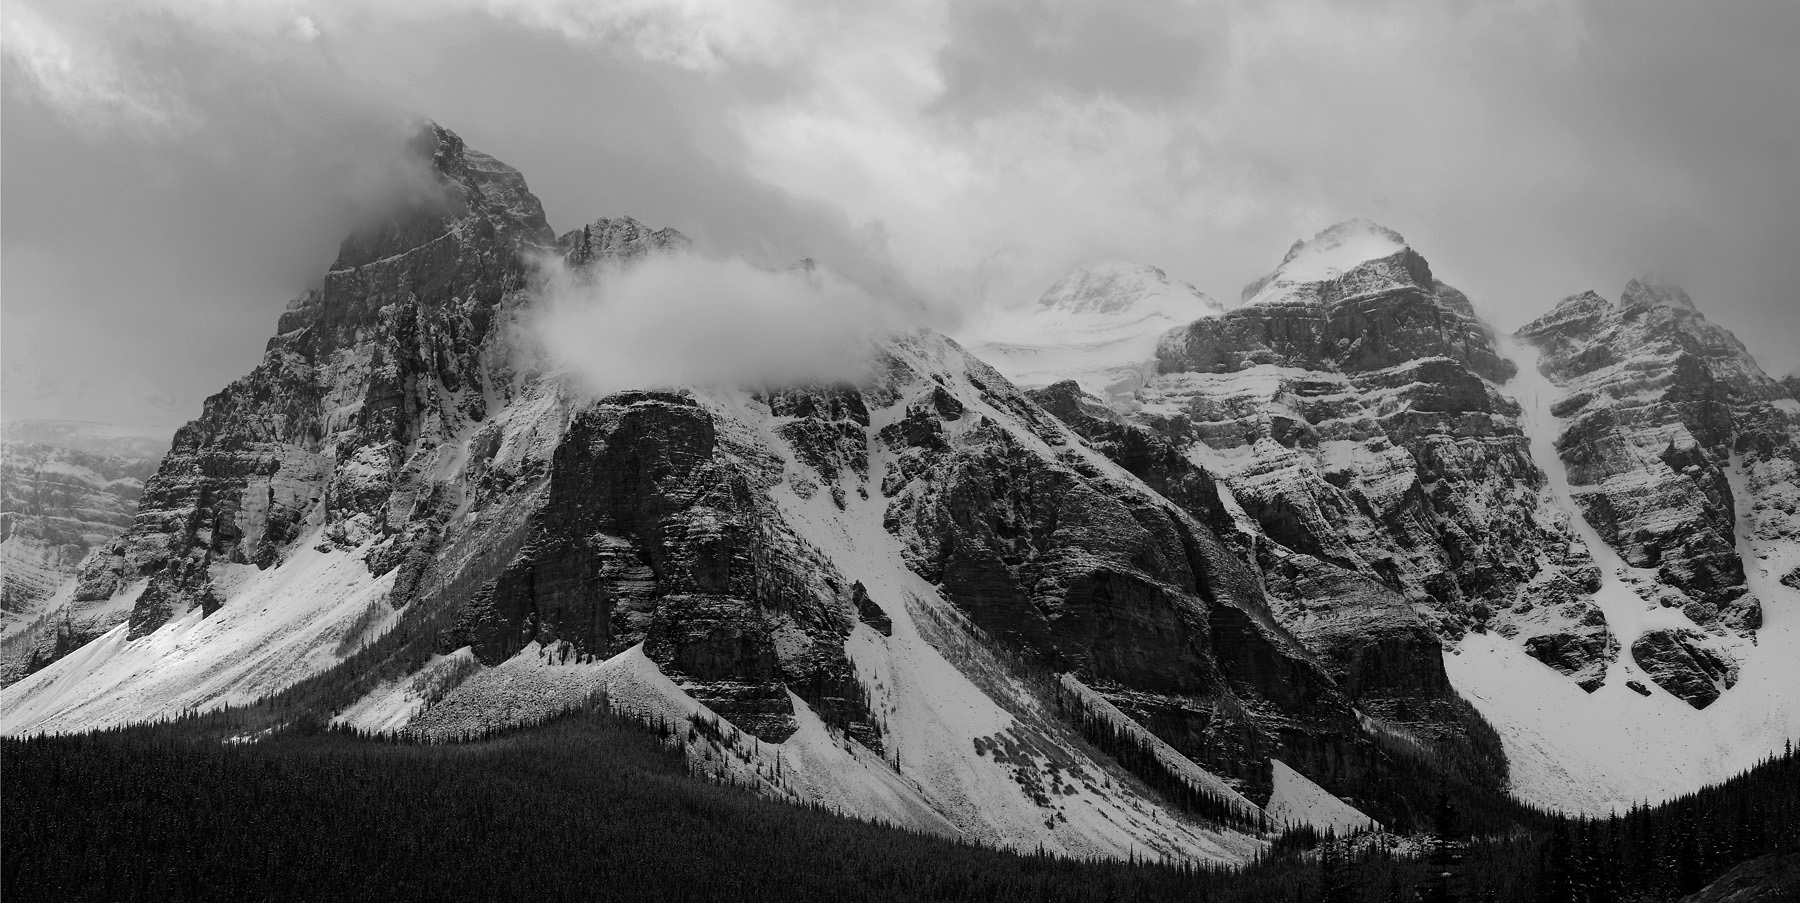 View from Road to Moraine lake